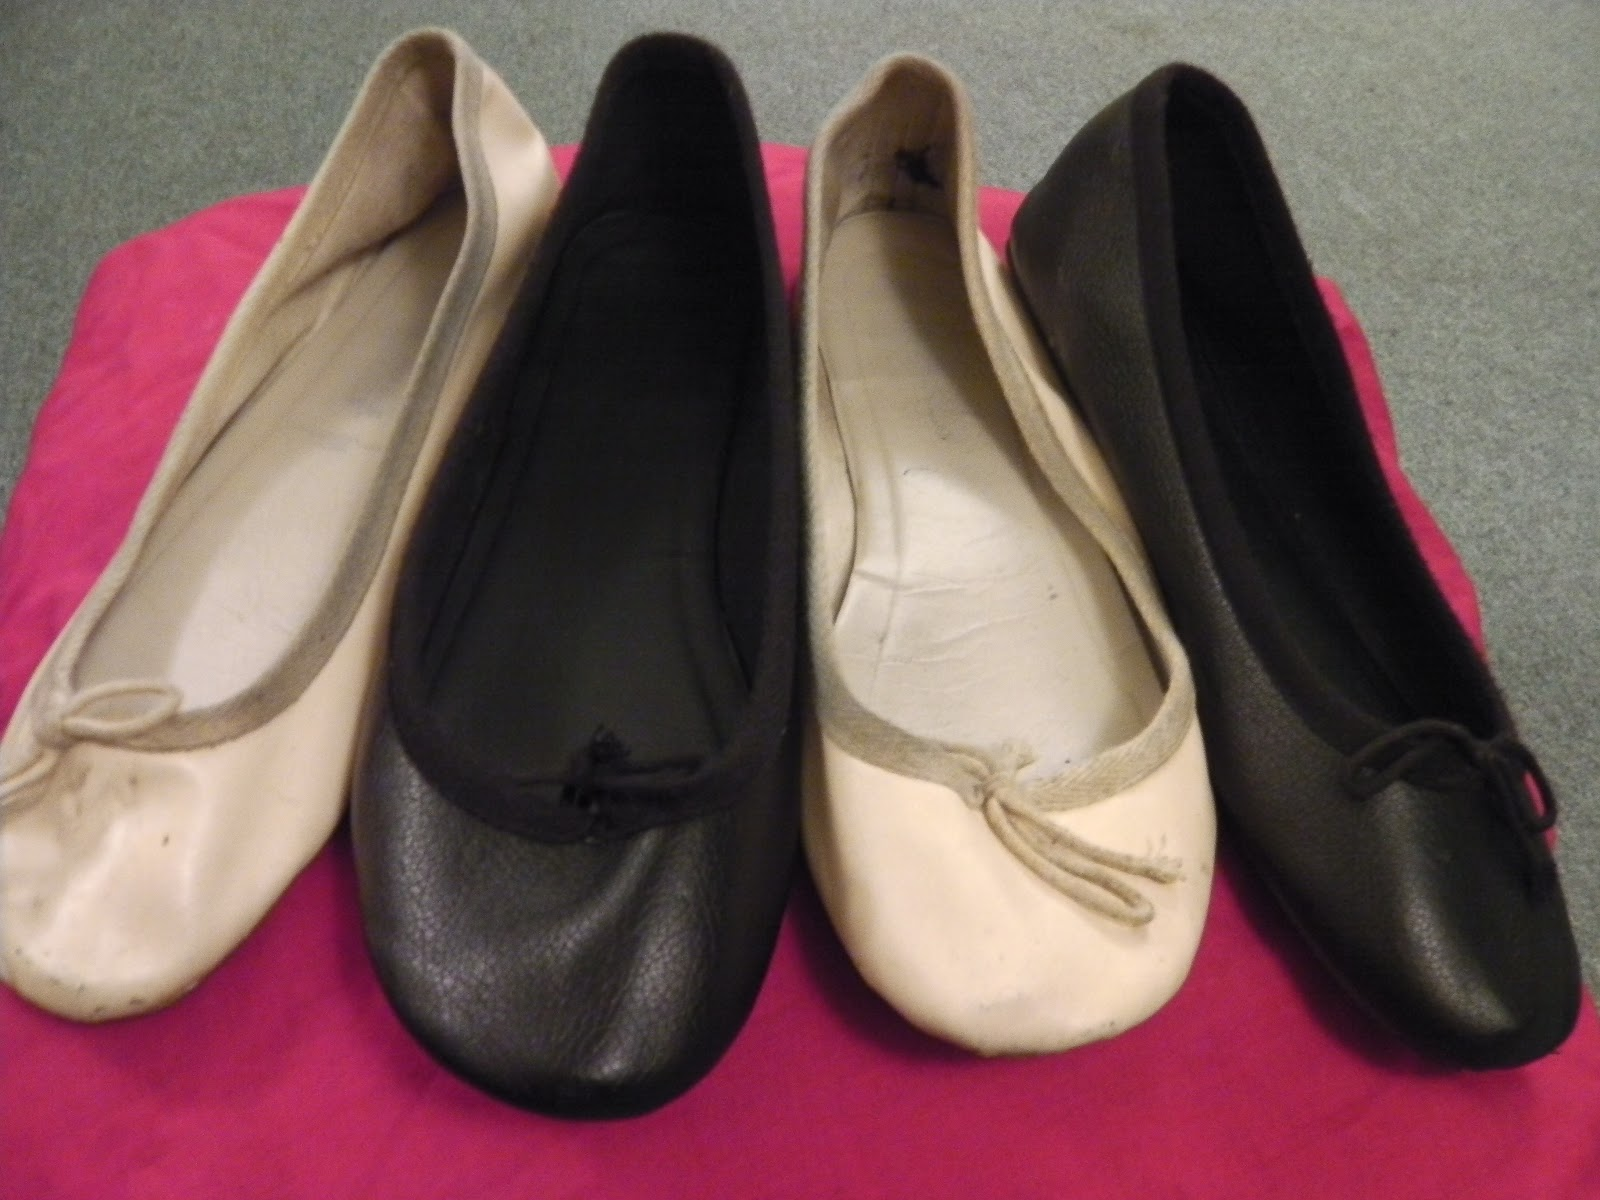 Bloch has been making professional quality soft ballet shoes since . BLOCH's ballet shoe collection today includes designs perfect for the beginner student all the way through to the professional dancer. Hand made in high quality leather, satin or canvas, our ballet shoes are built to meet the highest demands of.